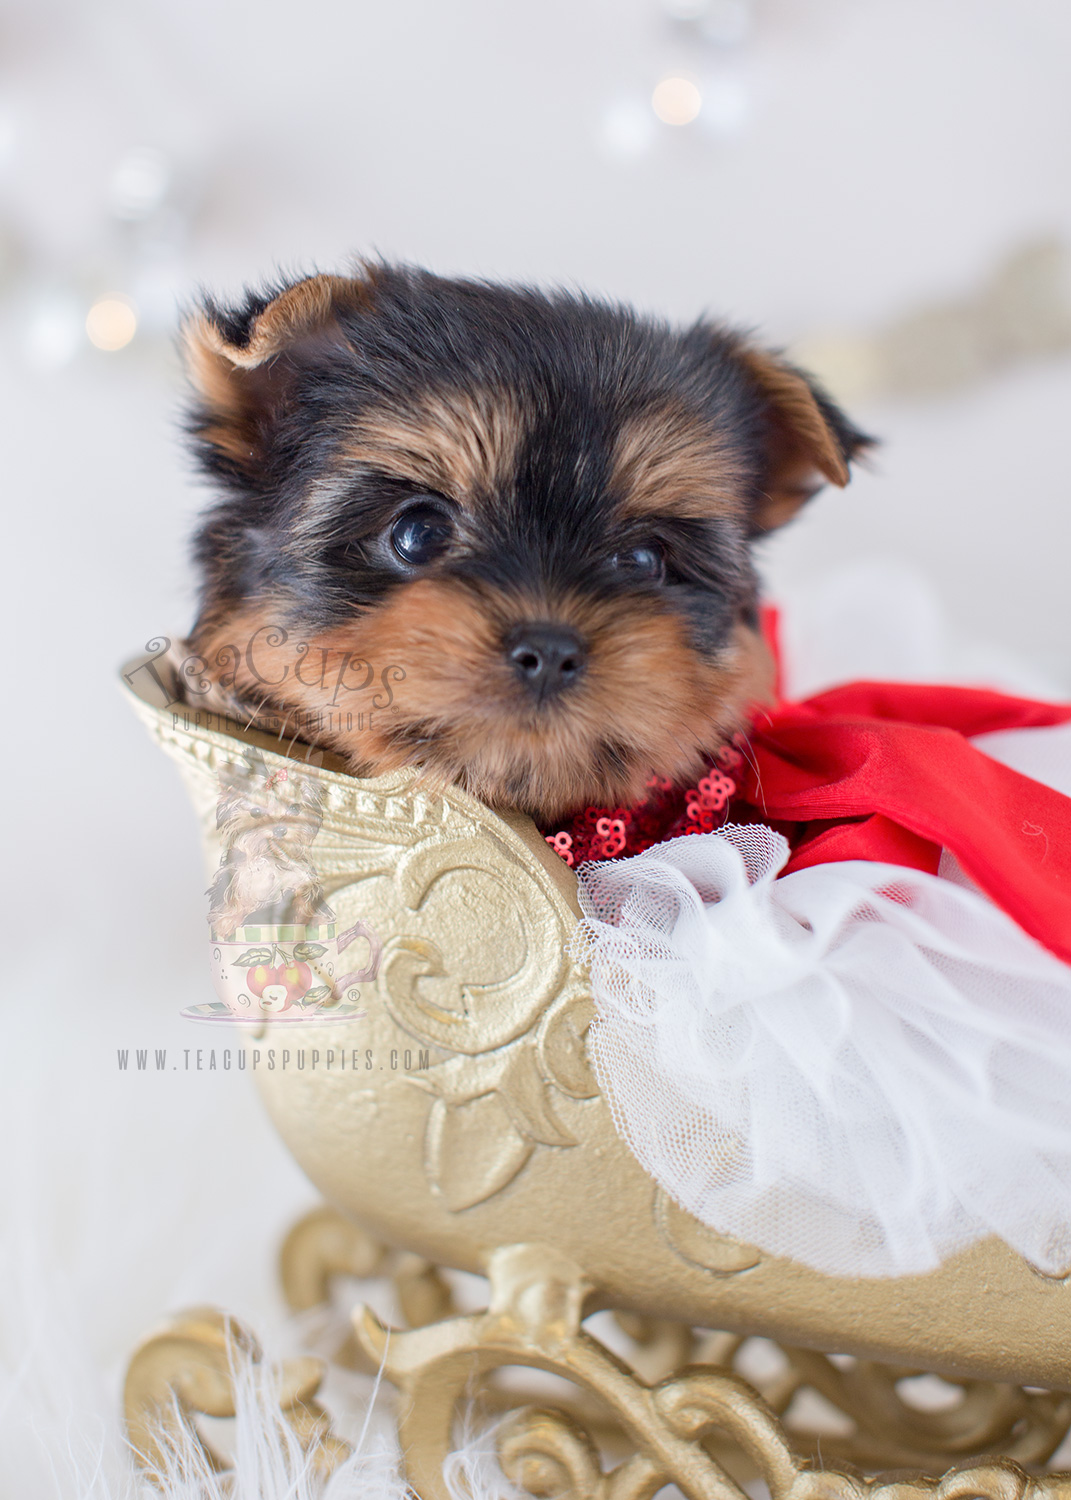 For Sale Teacup Puppies #319 Beautiful Yorkshire Terrier Puppy